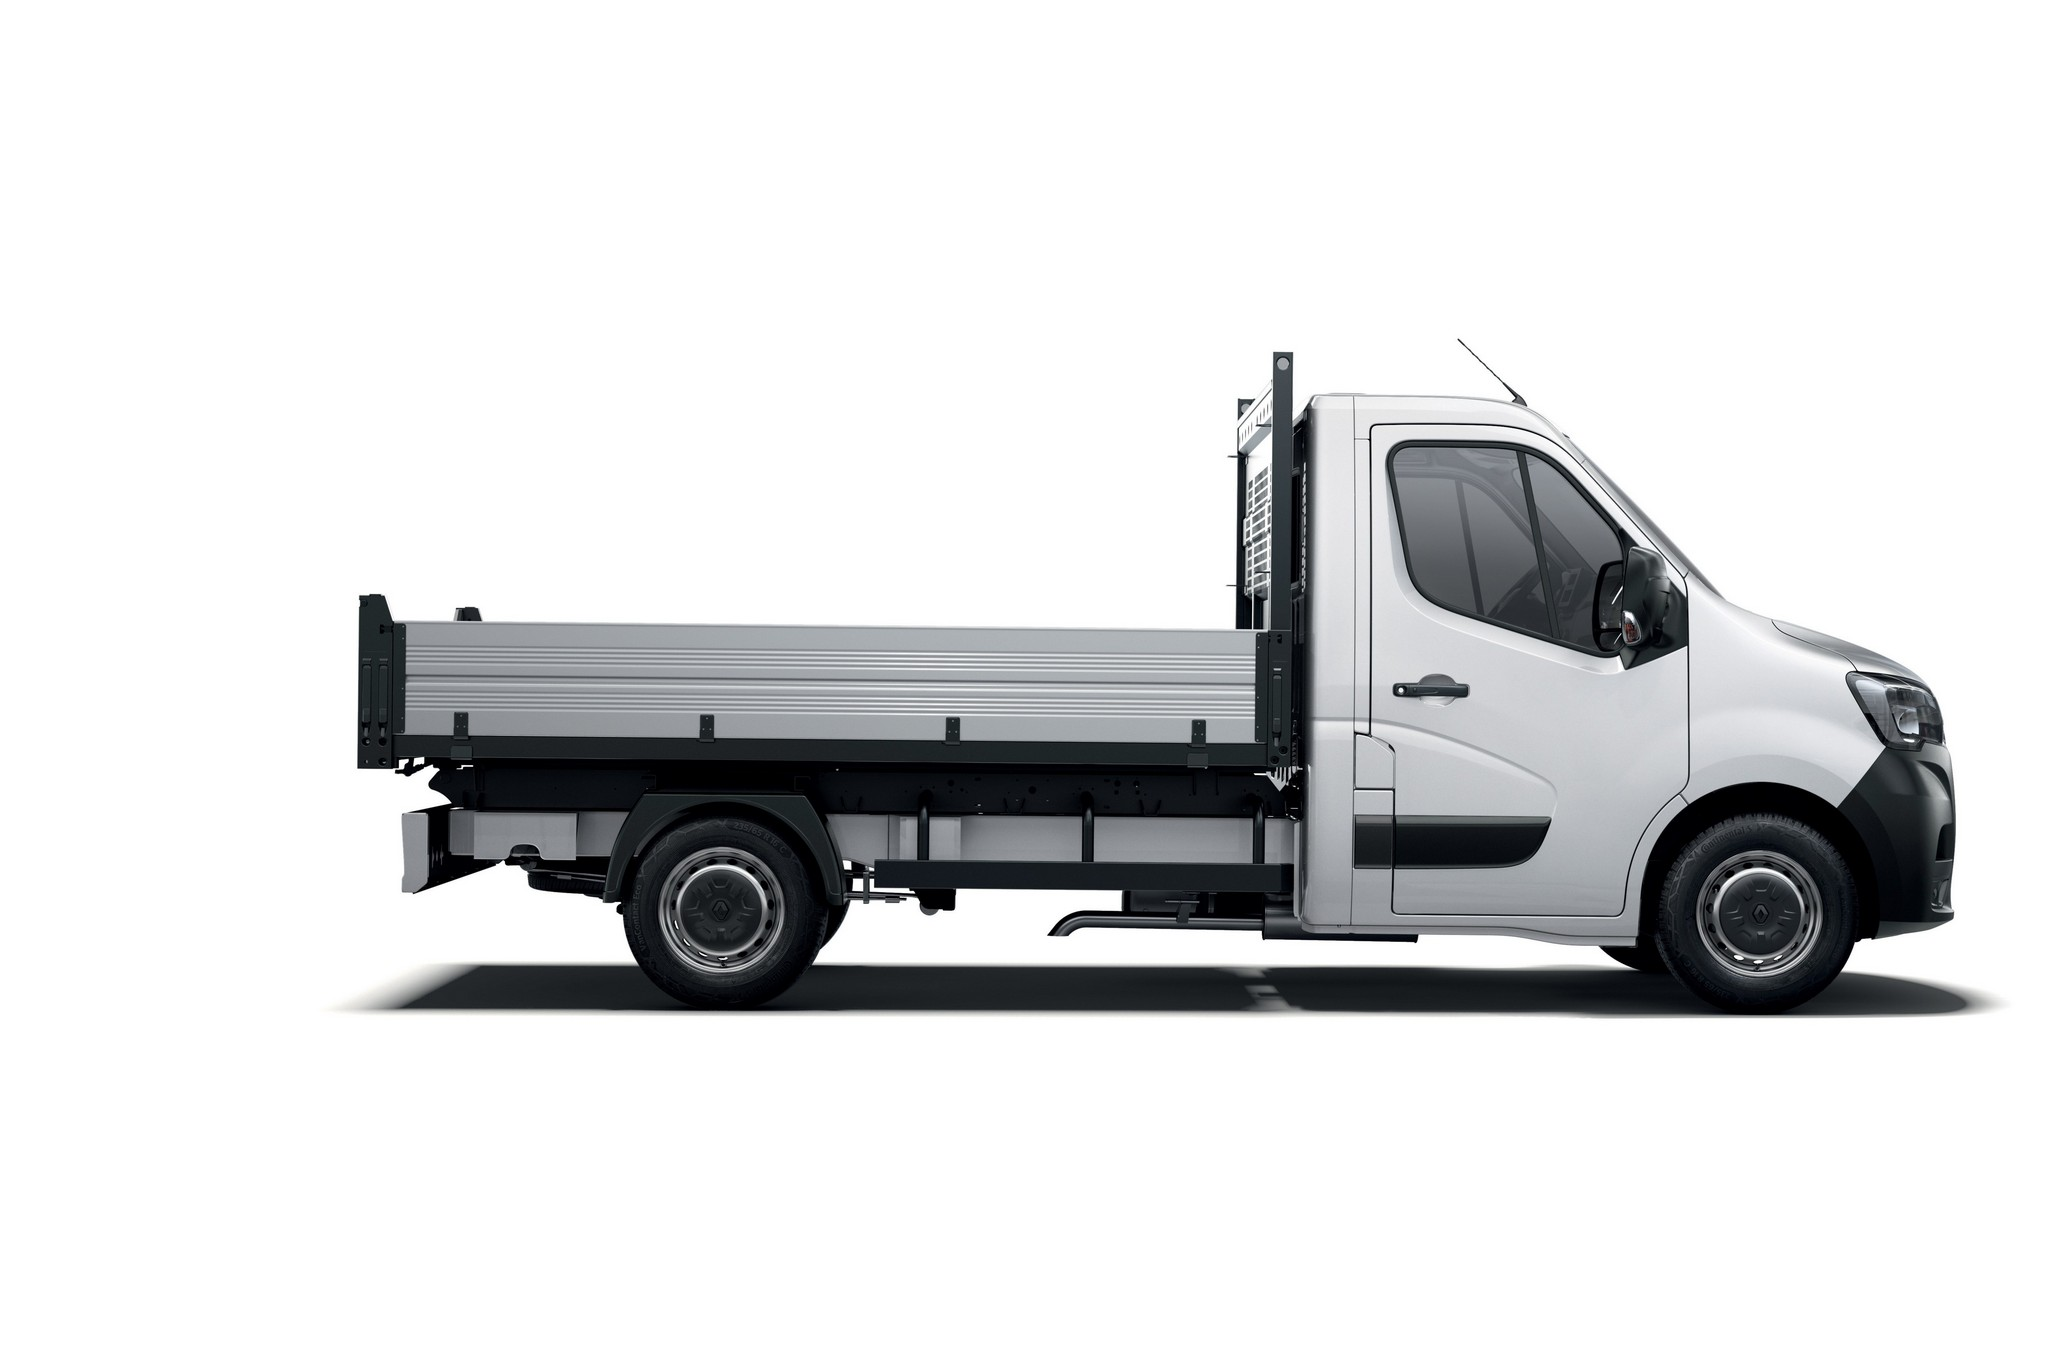 21224963_2019_-_New_Renault_MASTER